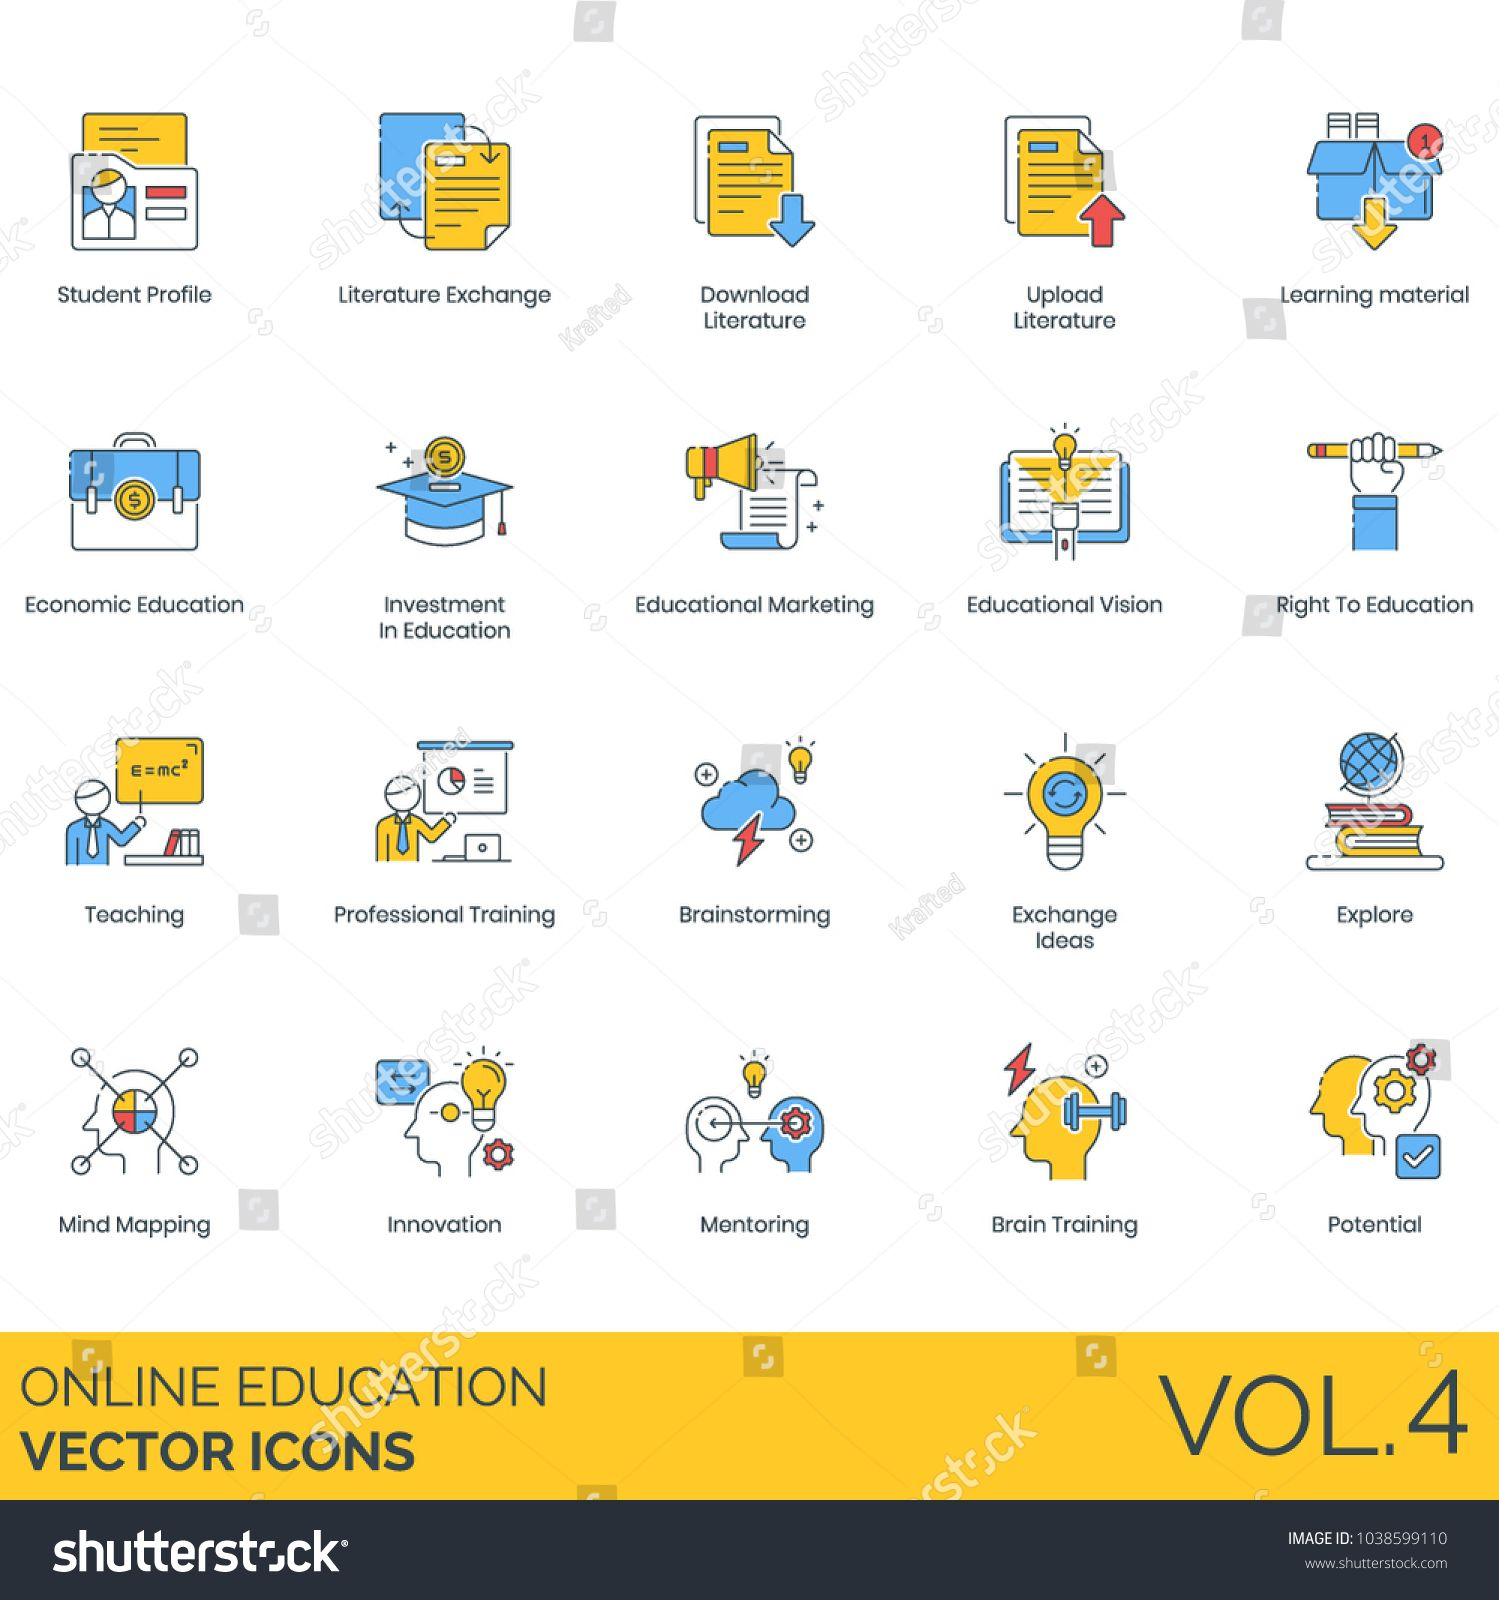 Online Education Vector Icons Student Profile Literature